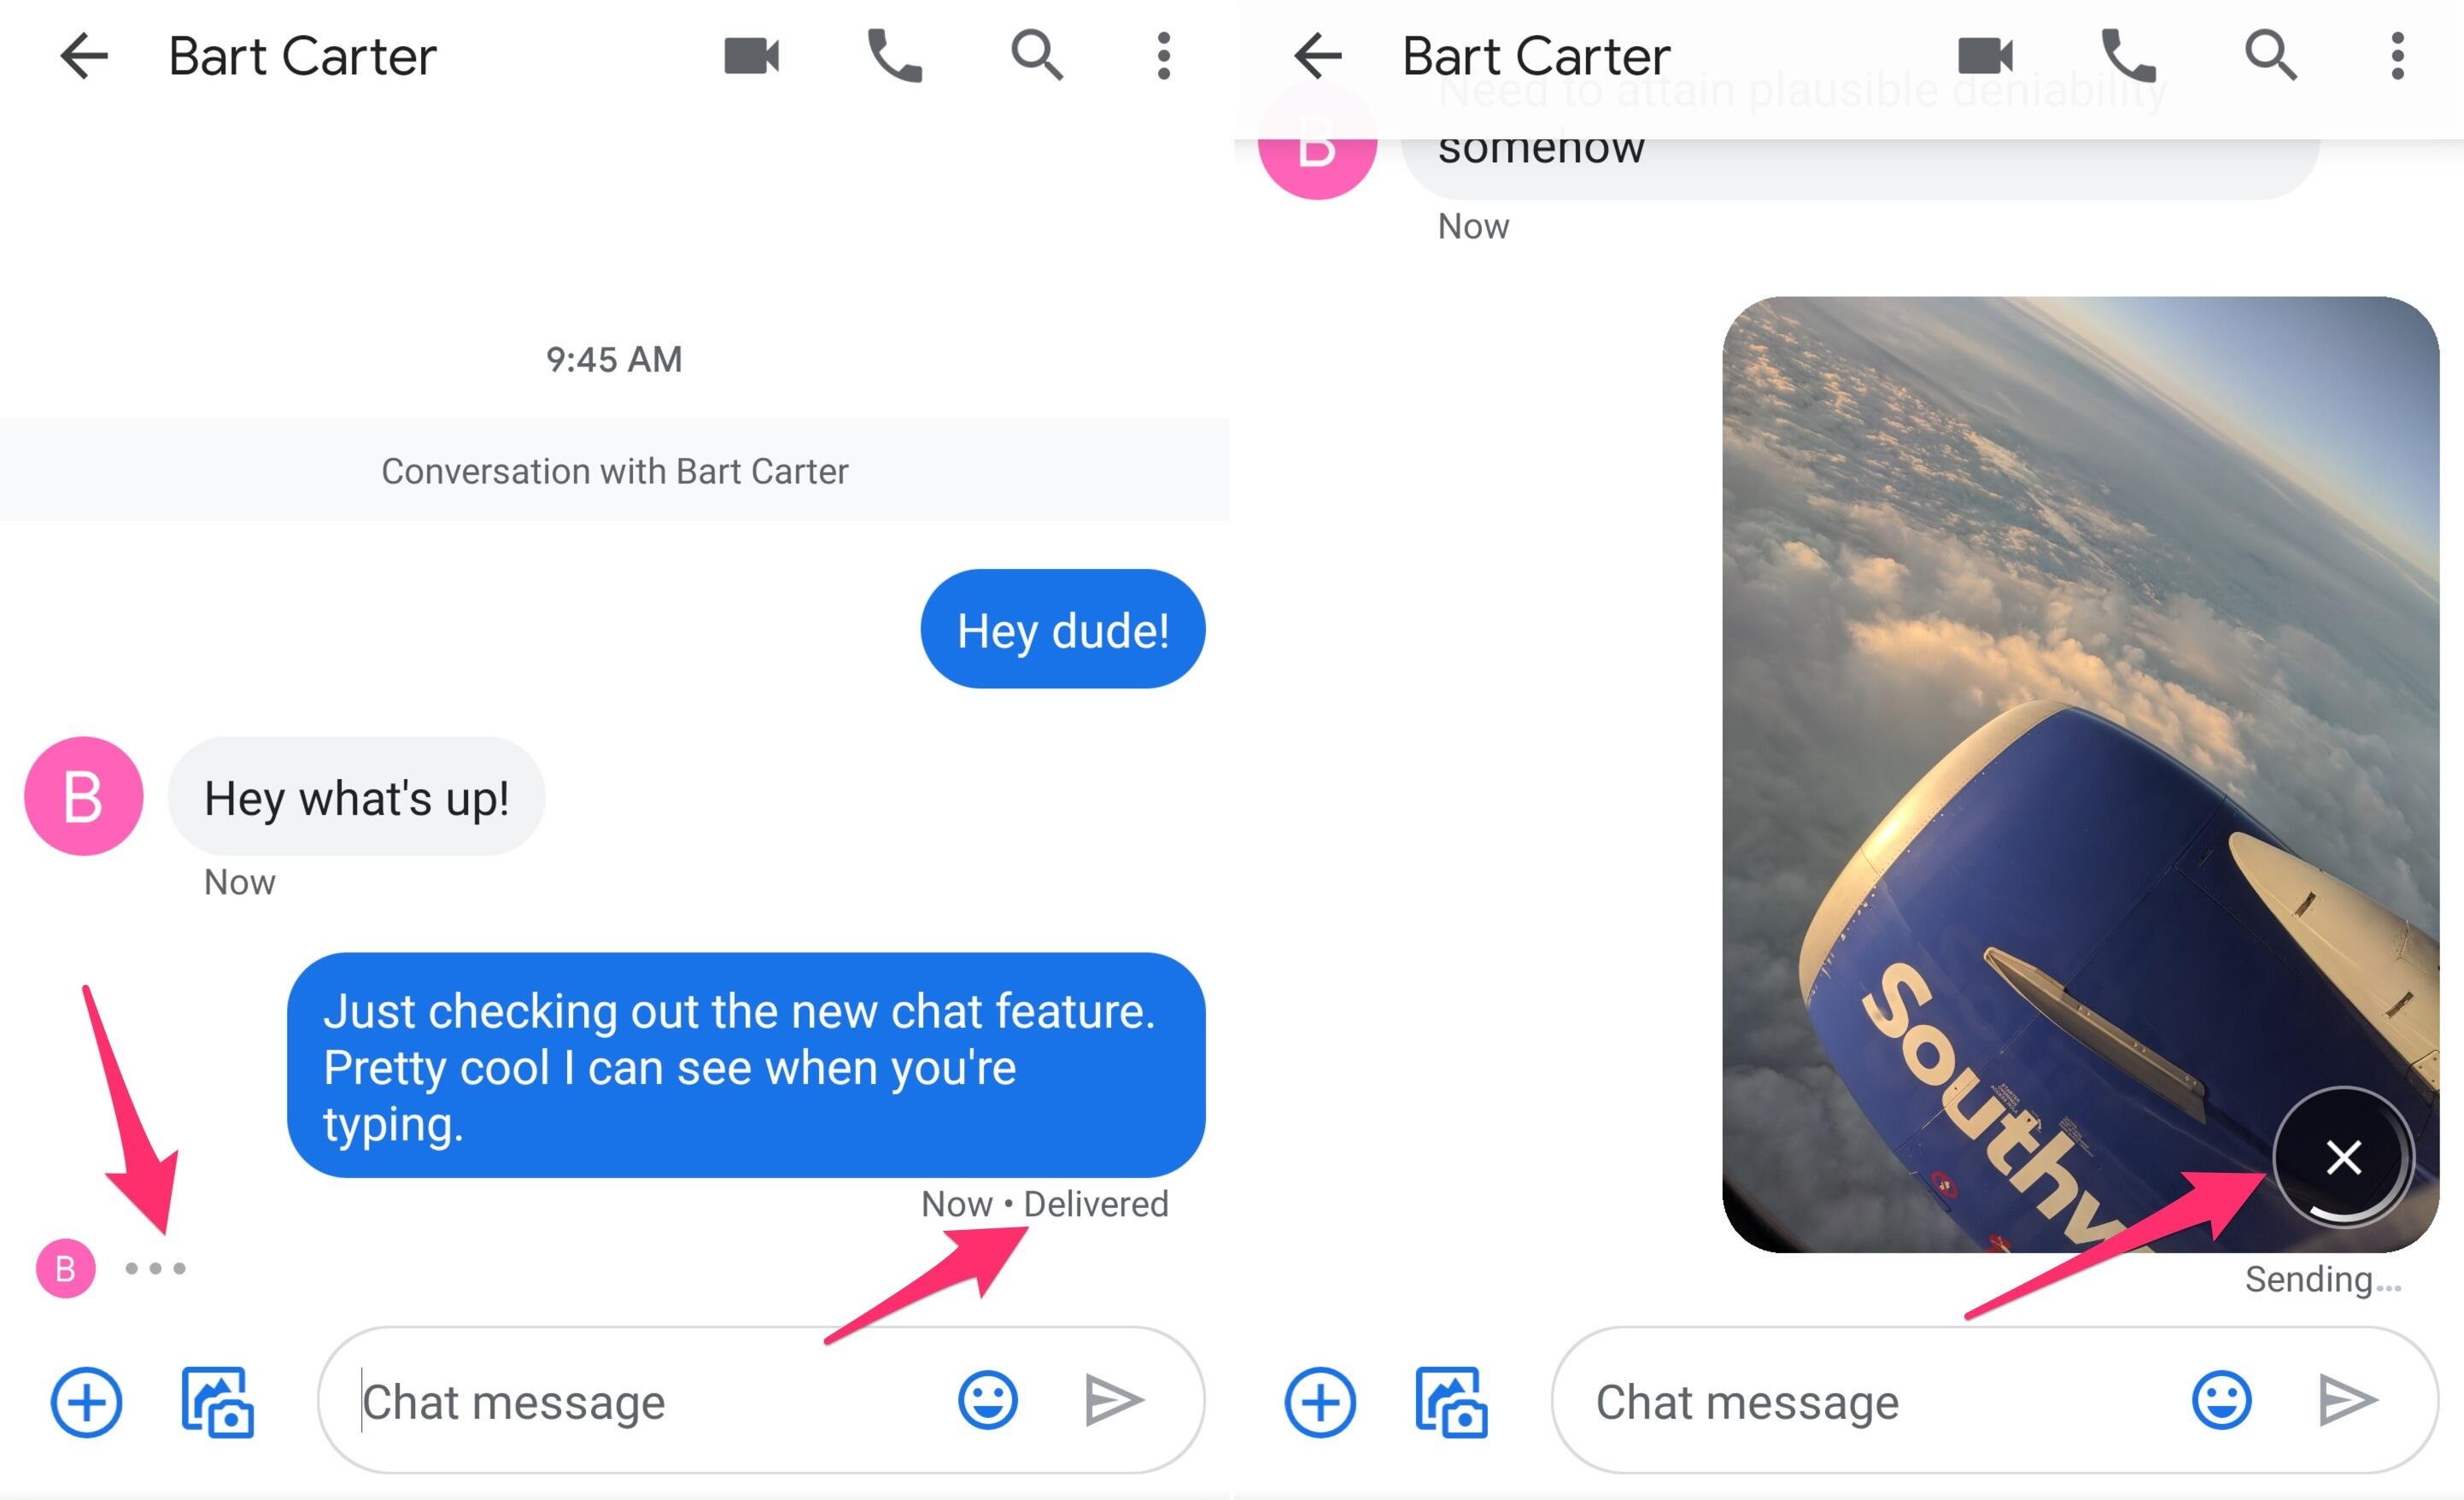 chat-features-in-conversation